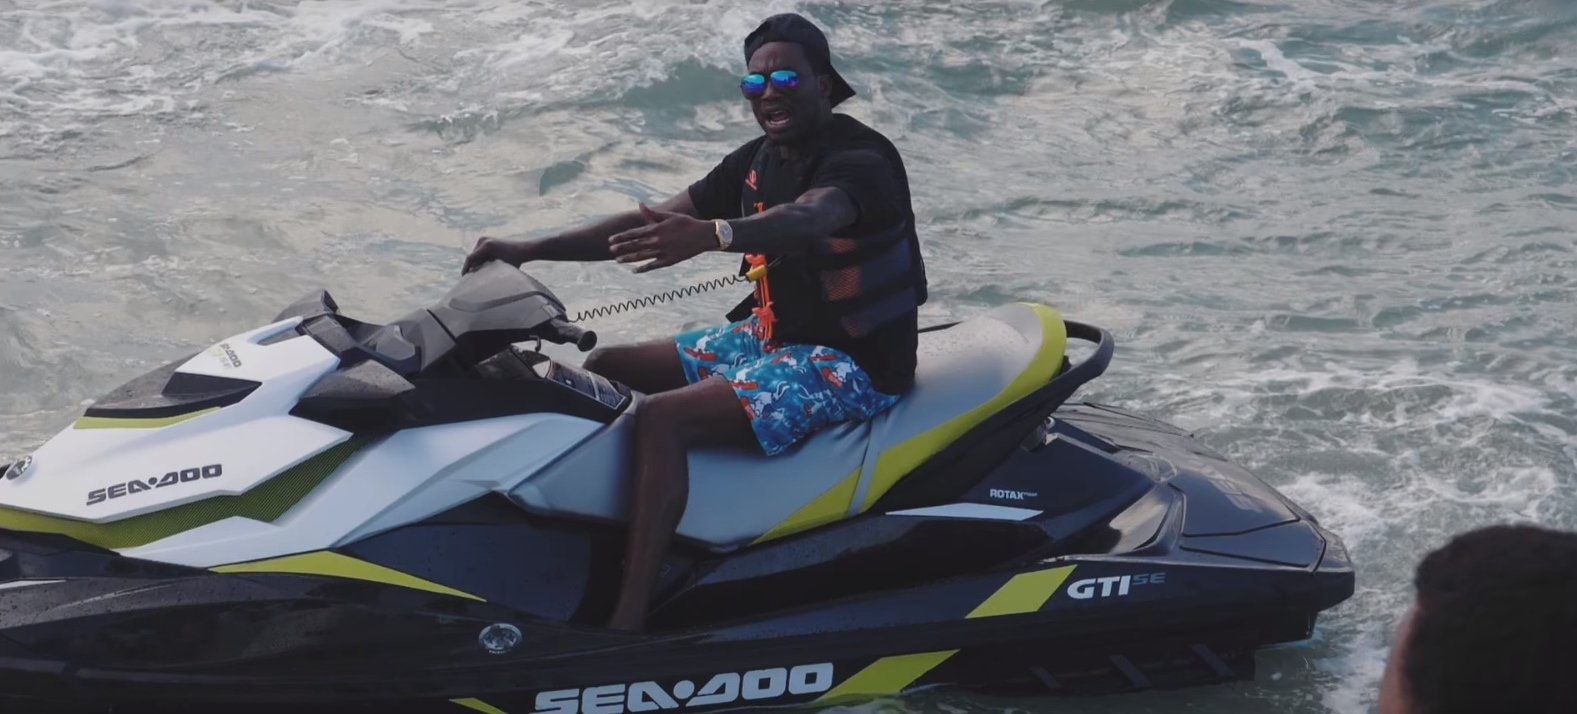 Sea-Doo Watercraft - Meek Mill - Issues Official Music Video Product Placement